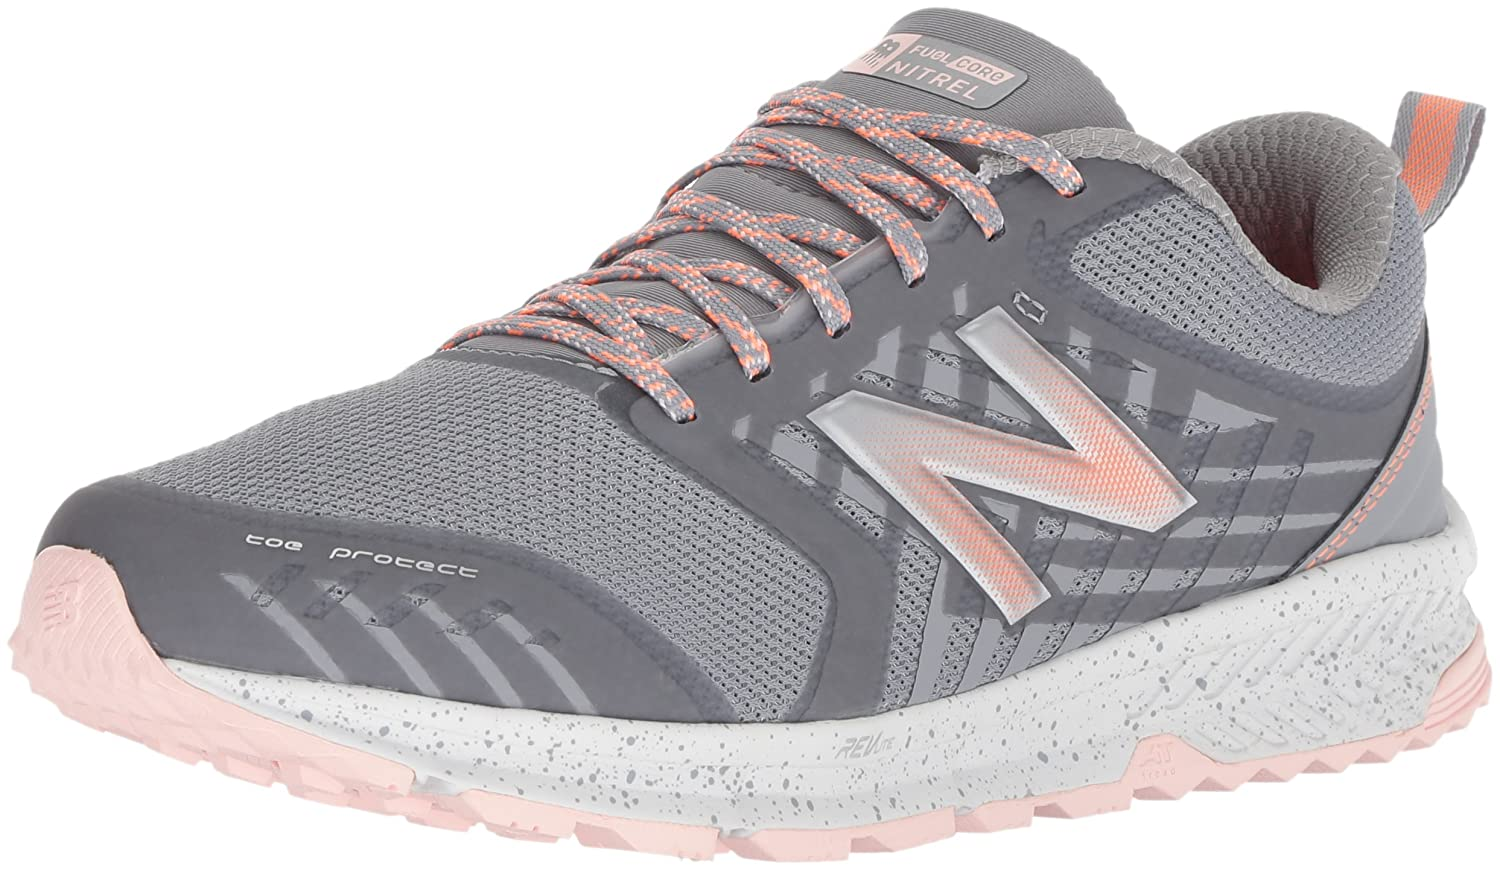 New Balance Women's Nitrel v1 FuelCore Trail Running Shoe B072QDBB4Q 7.5 B(M) US|Grey